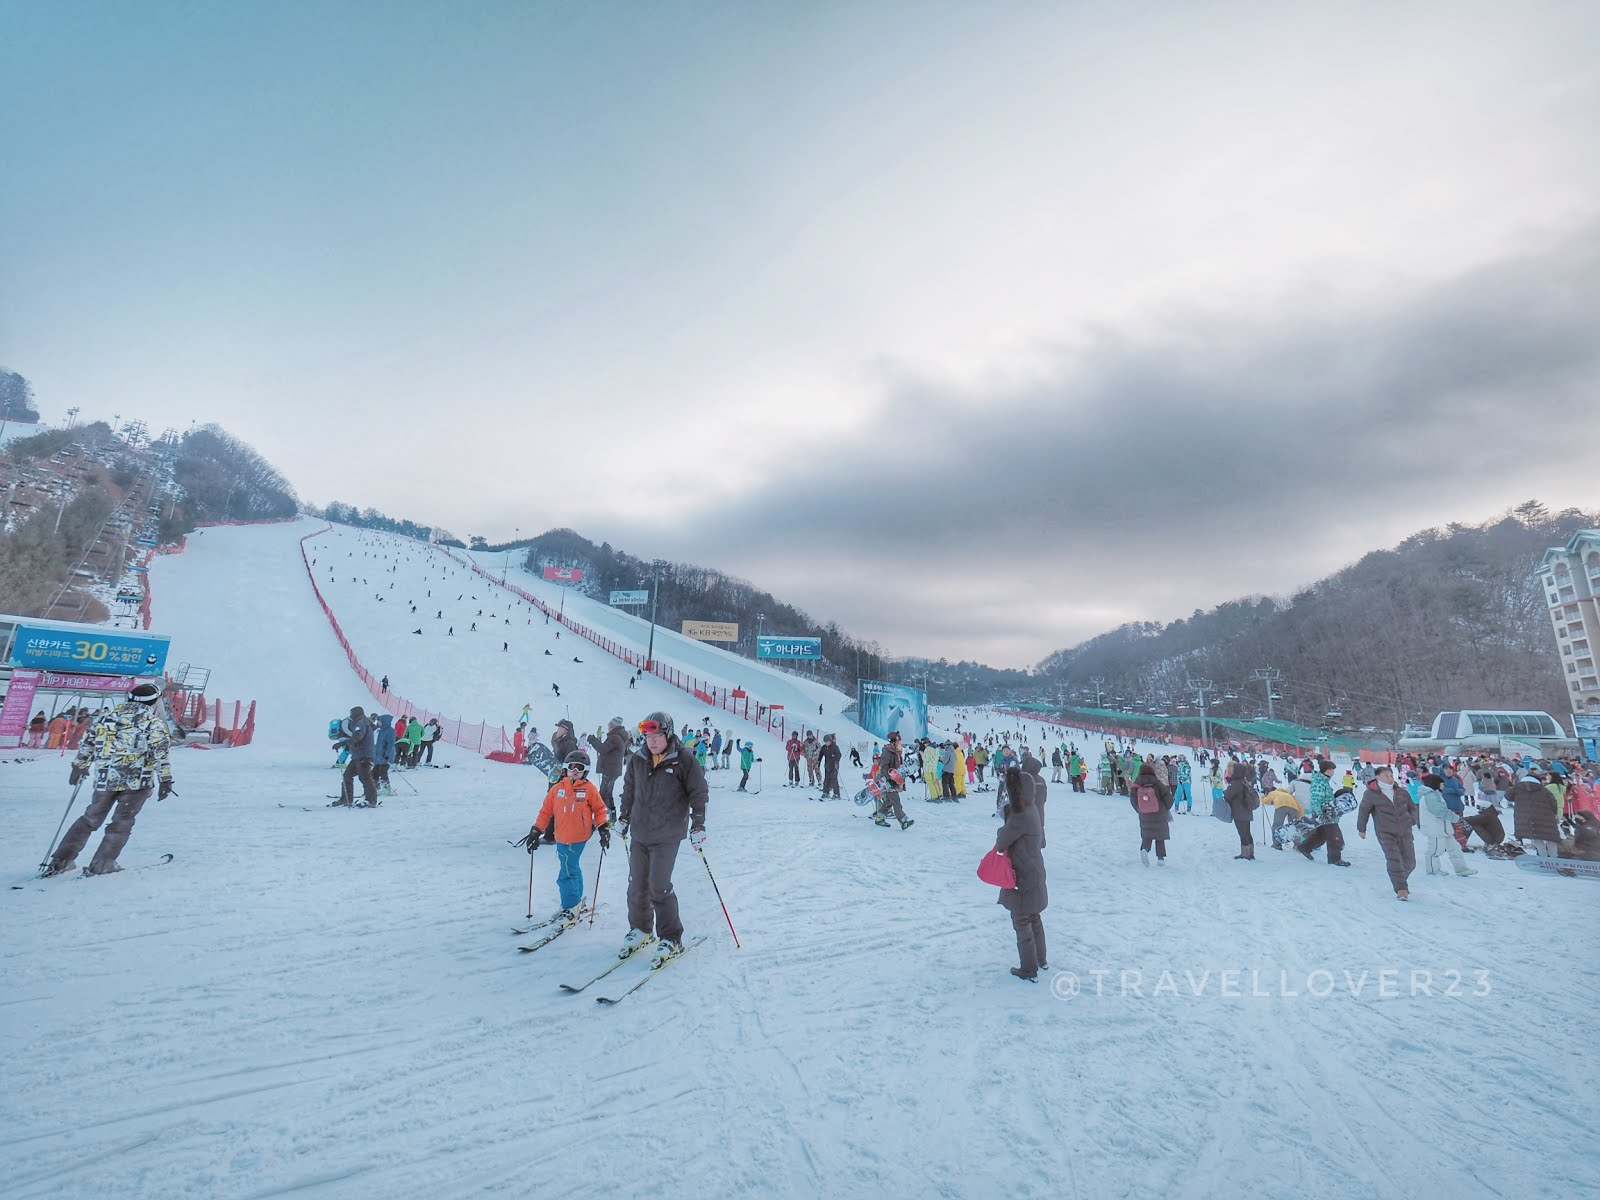 Korea 2018vivaldi Park One Day Ski Snowboard Shuttle Bus Tour Winter Package 4d3n The Basic Lesson Is 6 7 People In A Group And Took For An Hour Firstly Alex Taught Us Technique How To Put On Take Off